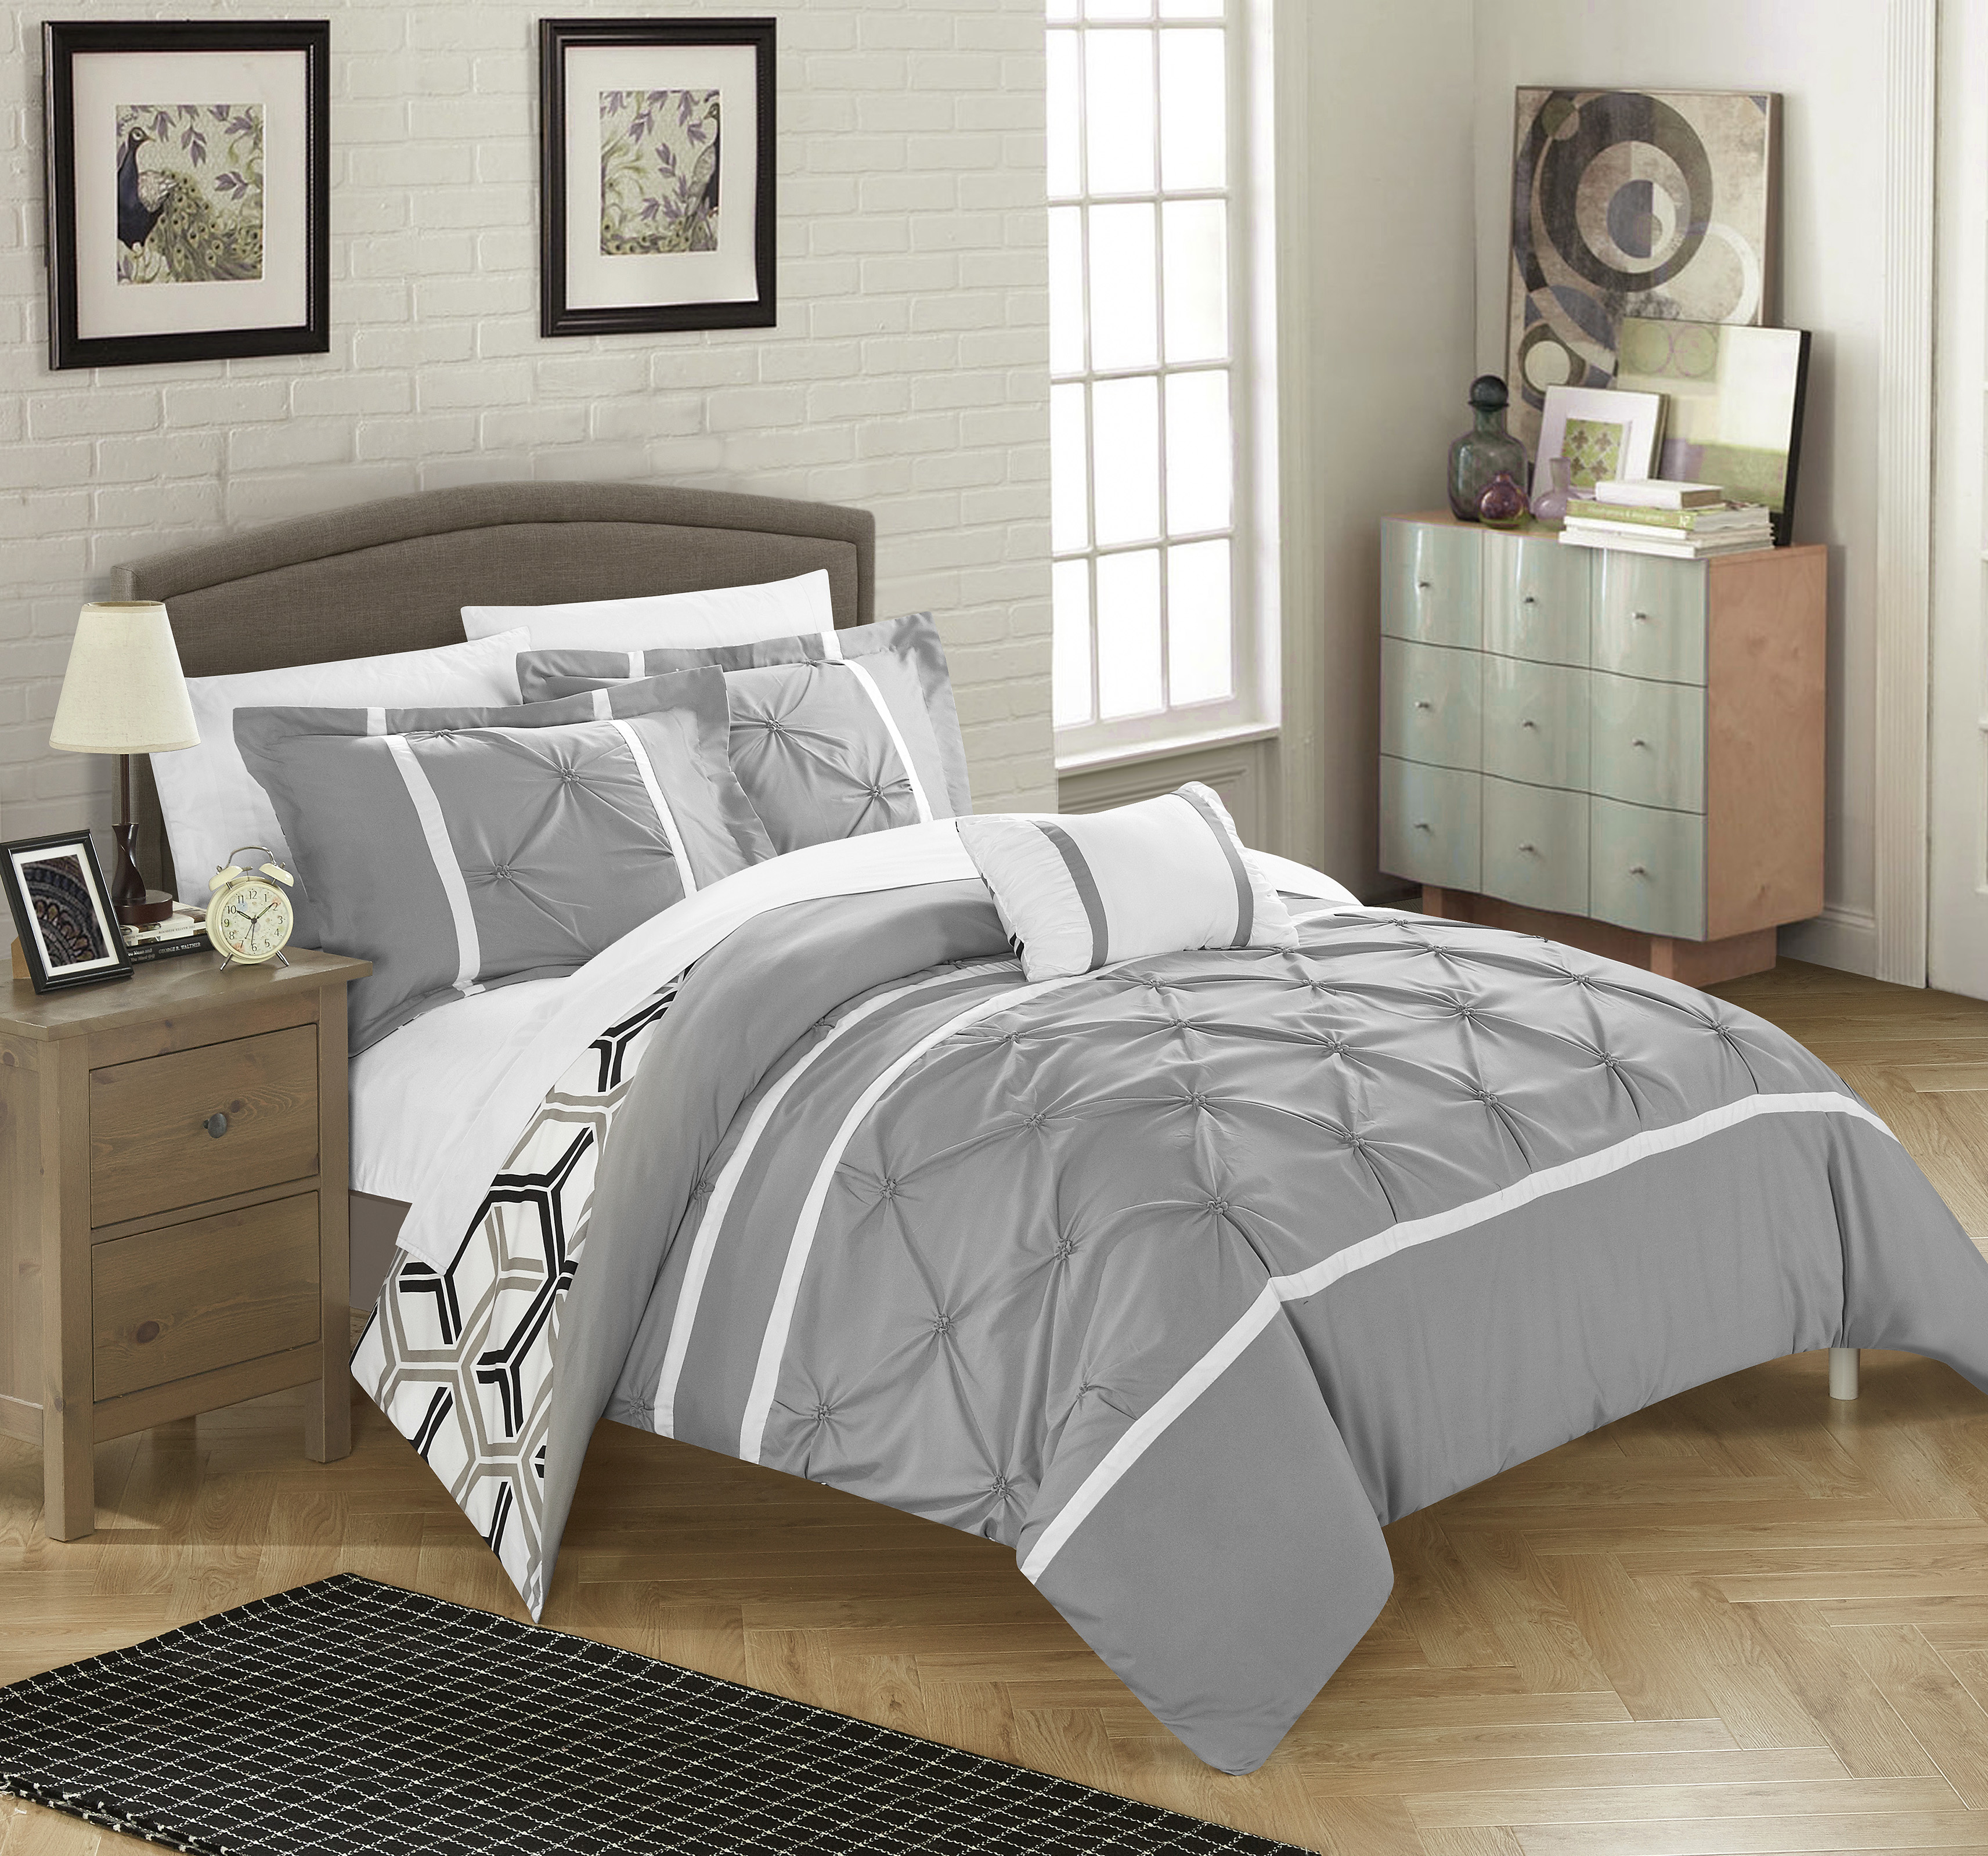 Chic Home 8-Piece Avee Pinch Pleated Ruffled and Reversible Geometric Design Printed Bed In a Bag Comforter Set with Sheets